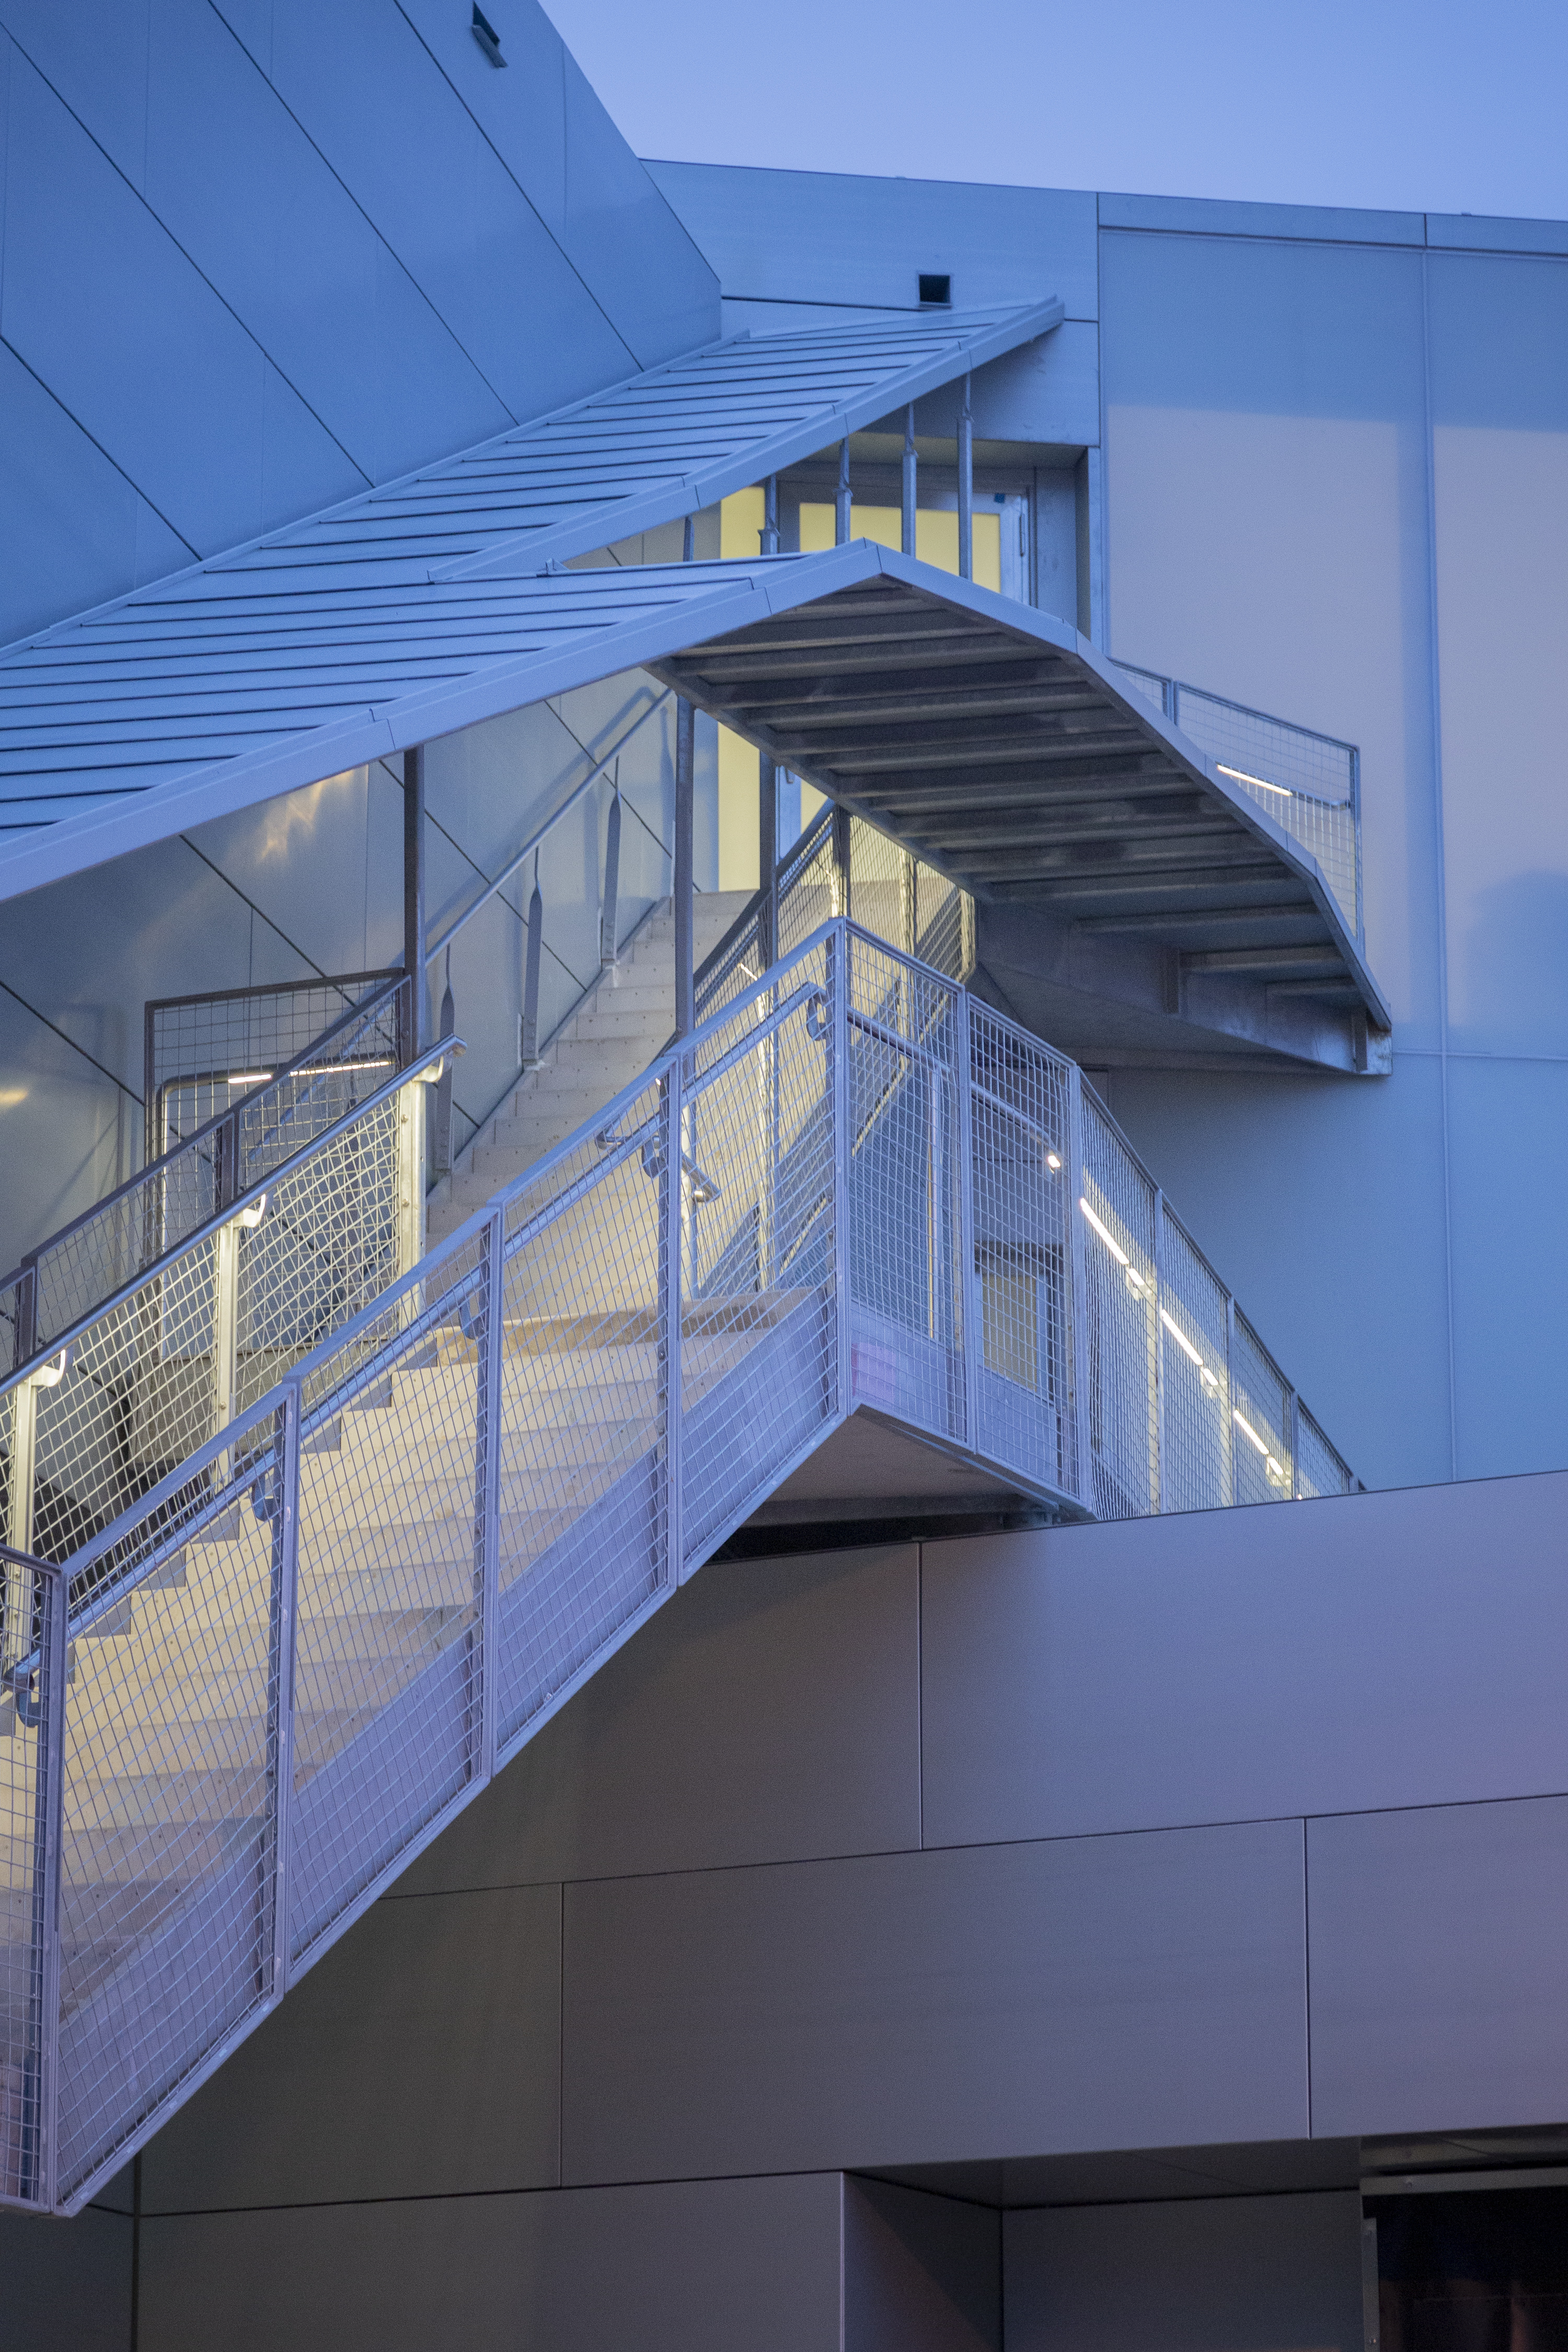 Zinc clad exterior walls and stair canopy